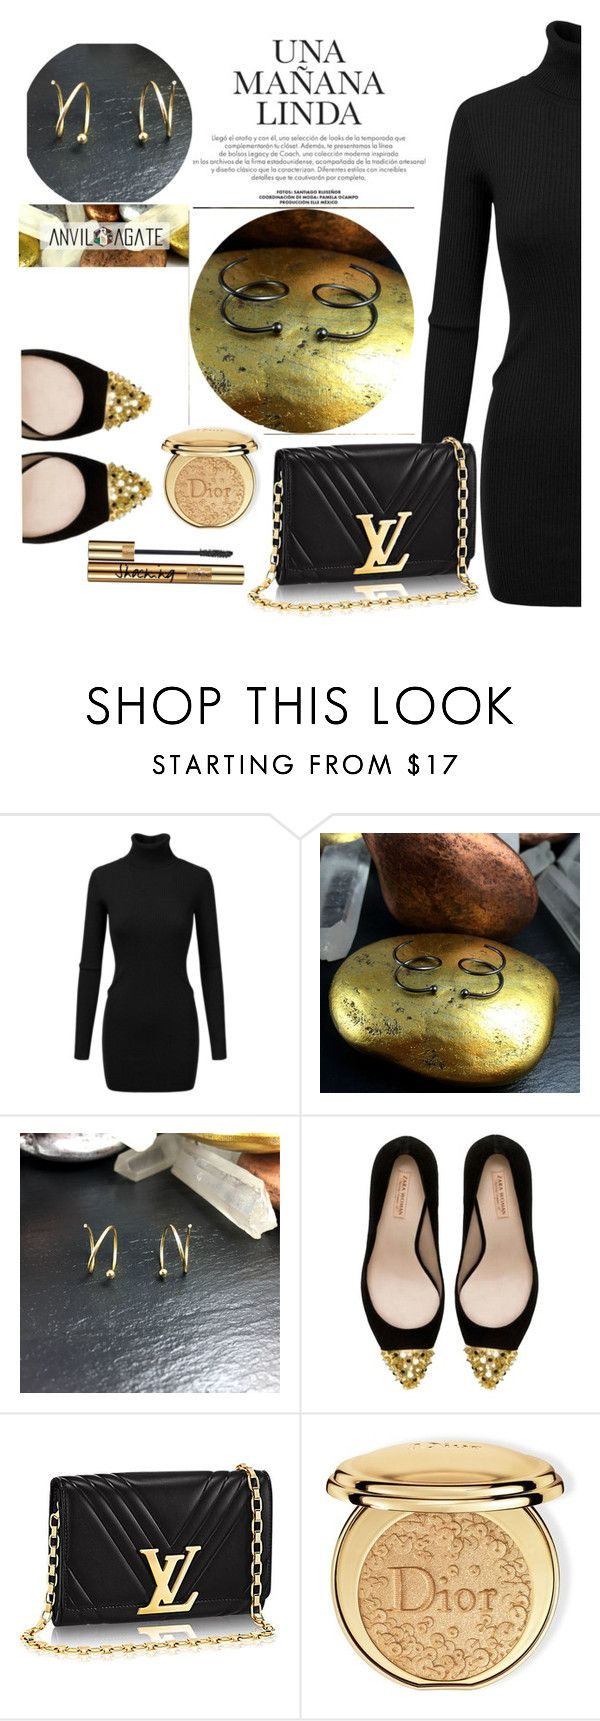 """""""ANVIL AGATE -Double Piercing Earrings"""" by selmir ❤ liked on Polyvore featuring Doublju, Zara, Christian Dior, Yves Saint Laurent, jewelry and anvilagate"""